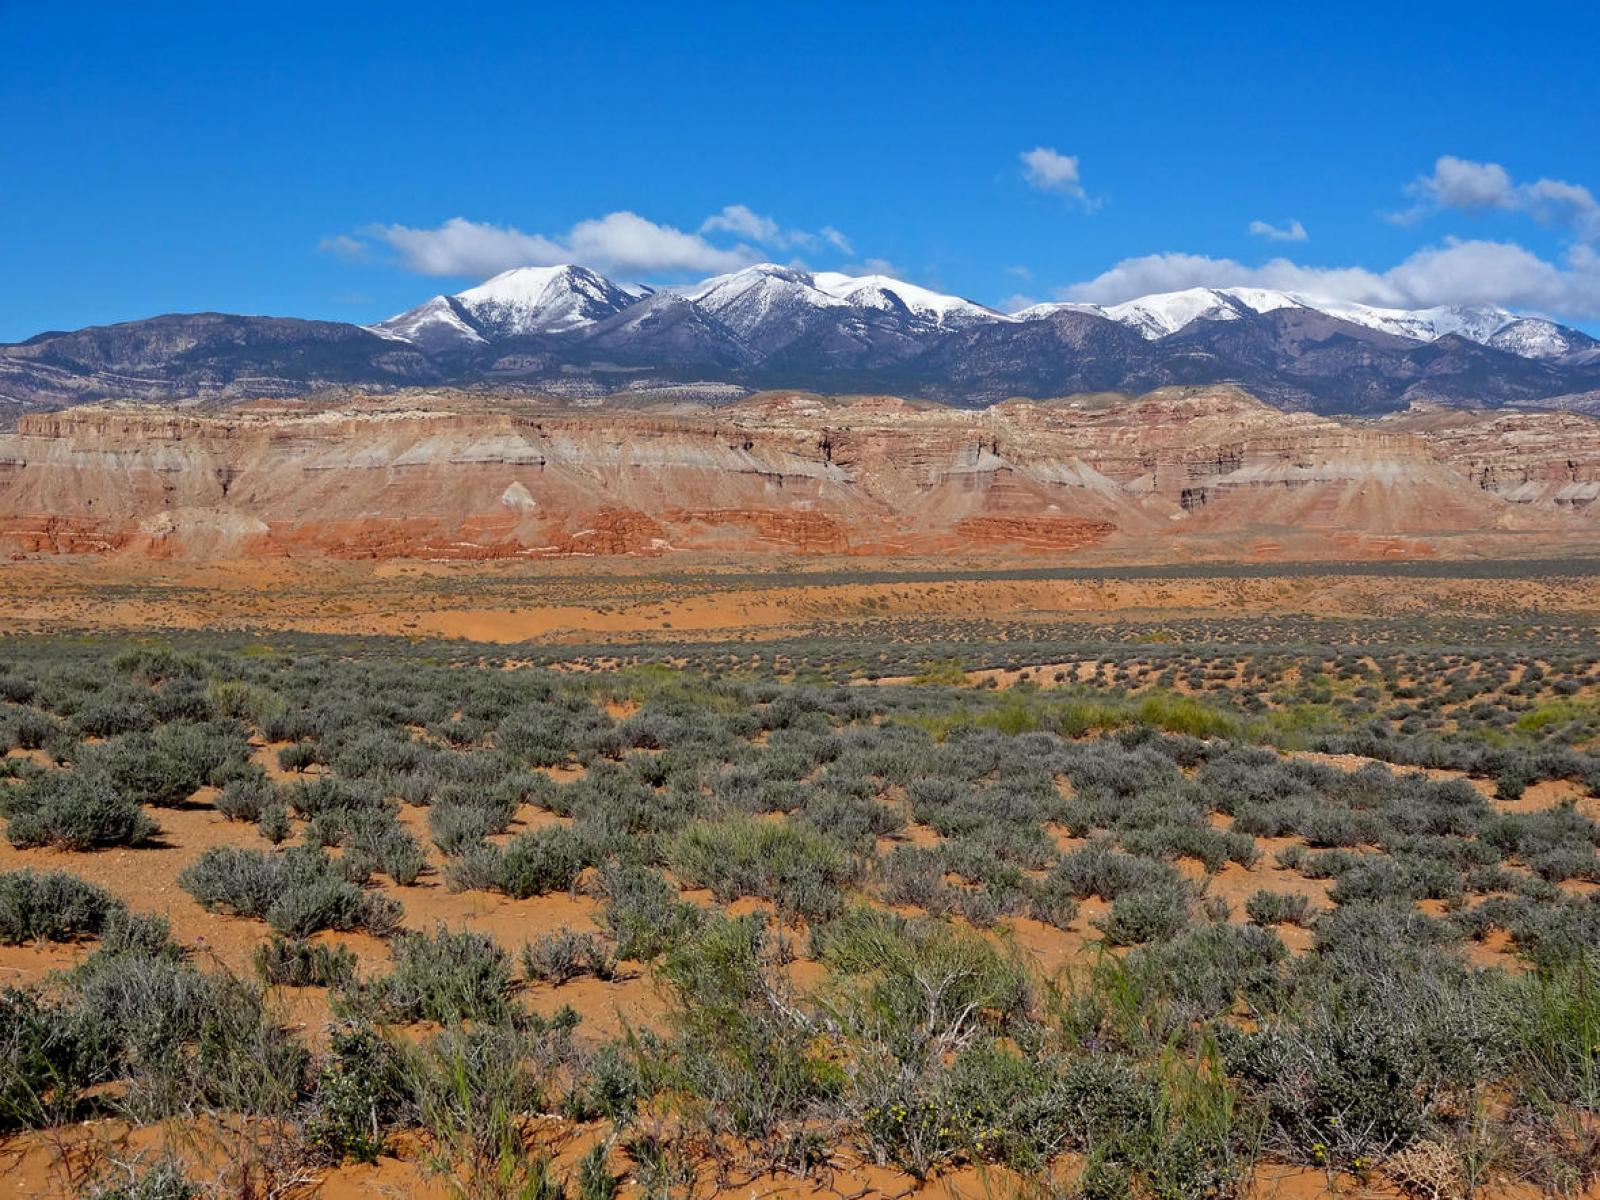 Image of low-lying scrub brush with mountains in the background.